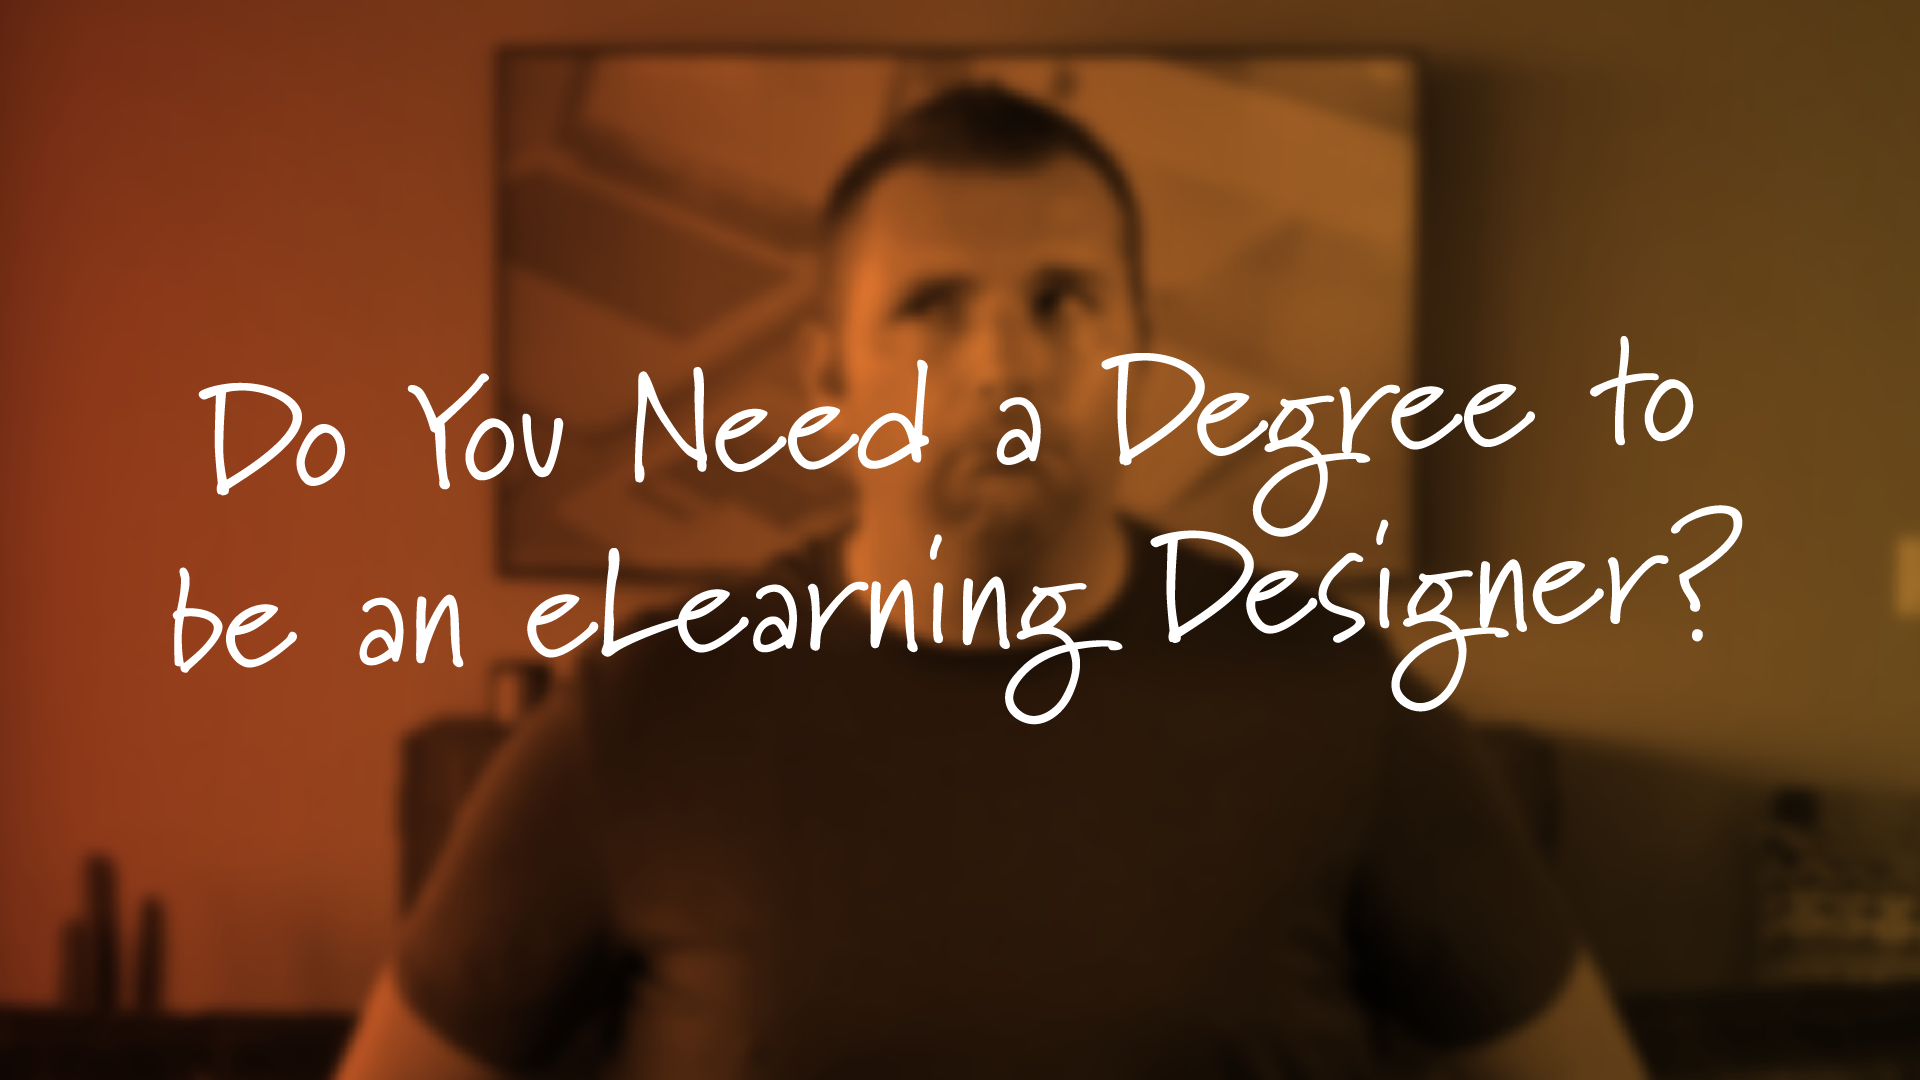 Do You Need a Degree in eLearning to Be an eLearning Designer?